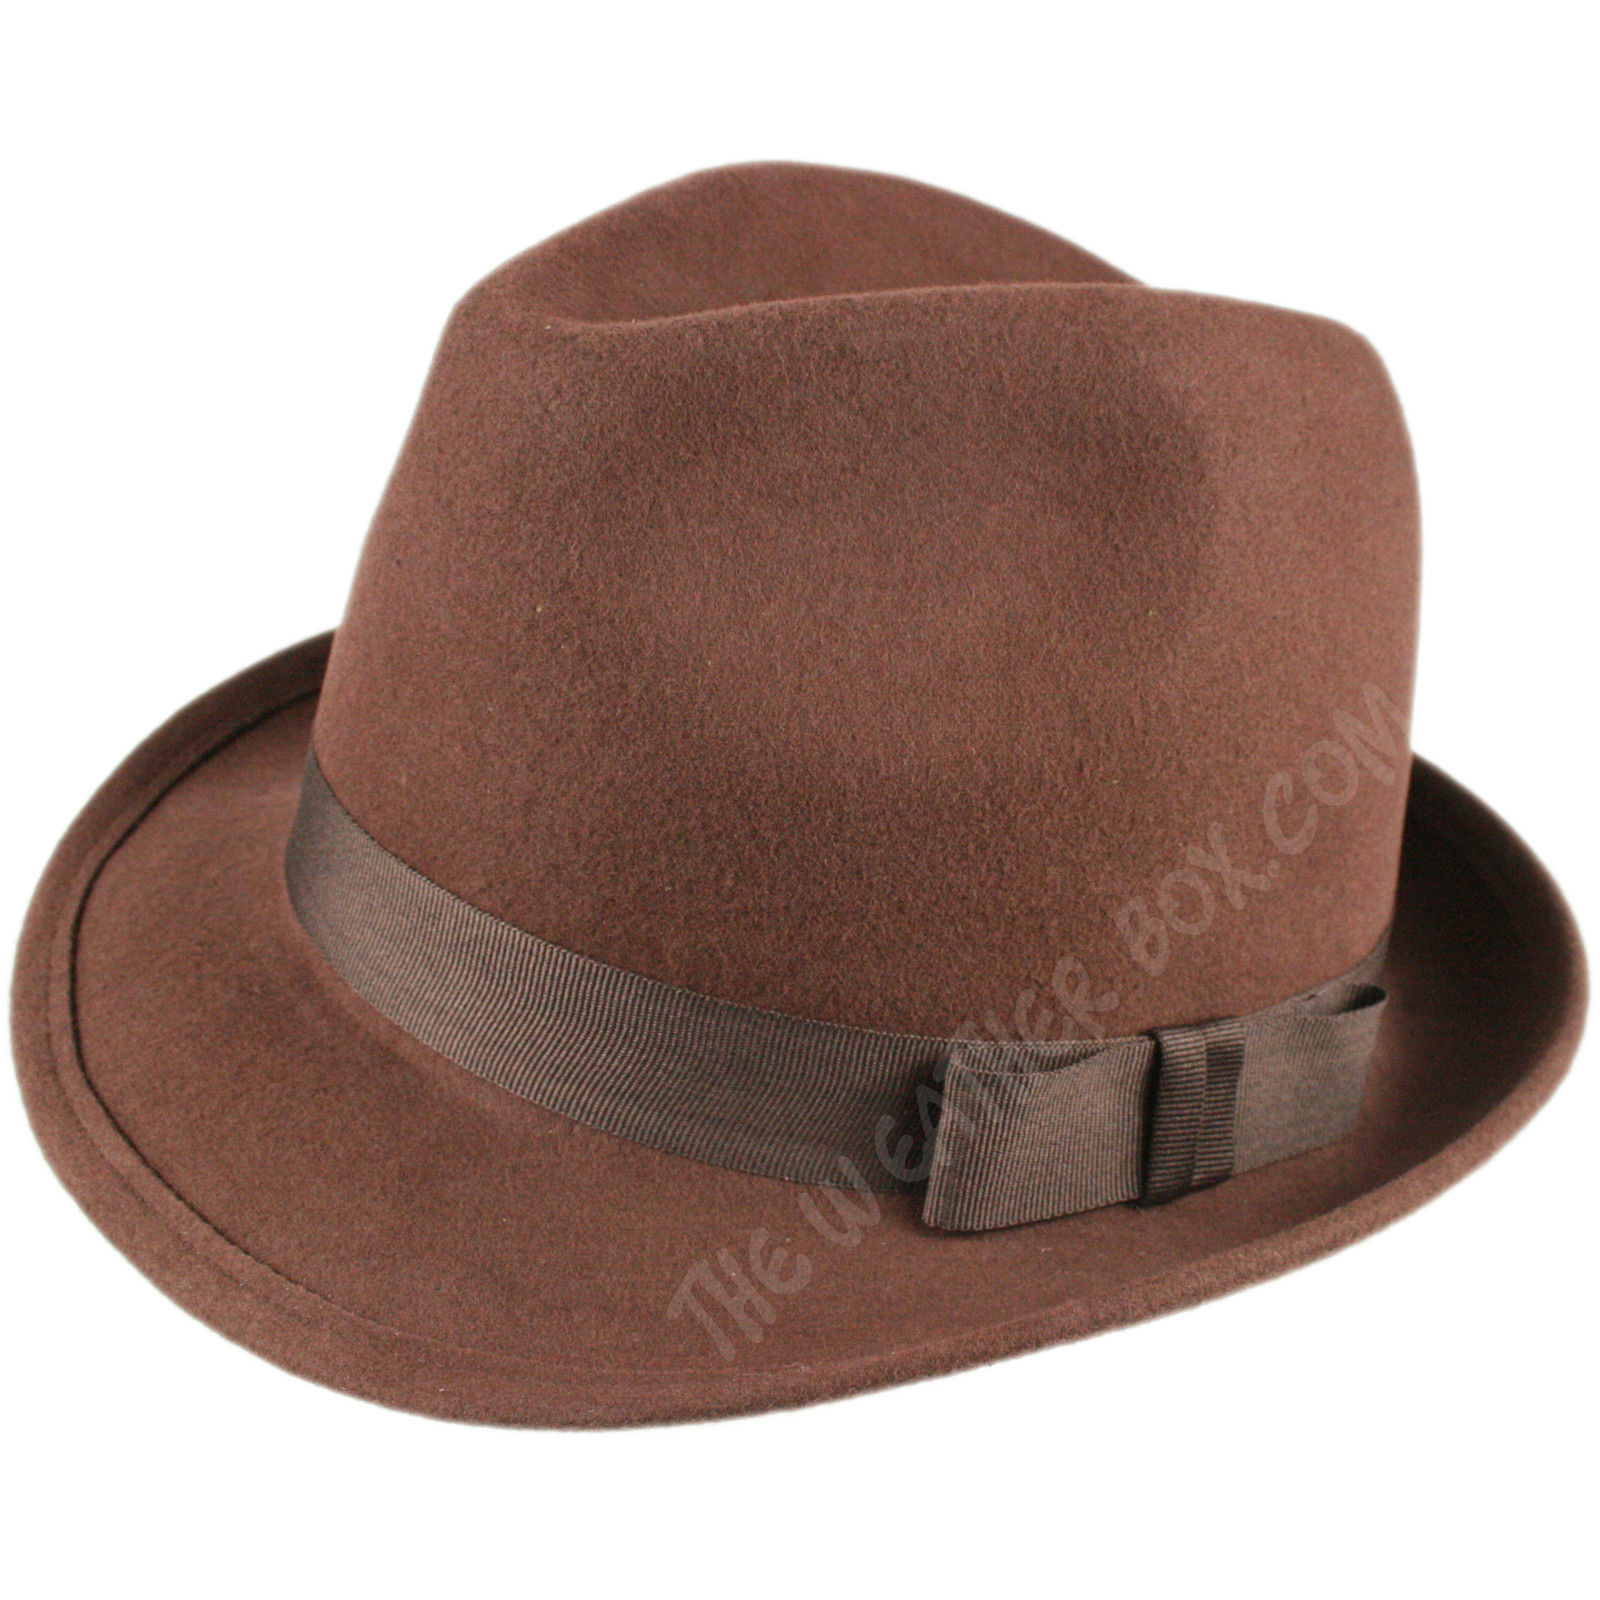 The trilby has become the cheesy default hat for too many men, and it's a mistake. There's a meme going around some circles that guys who wear fedoras are jerks.